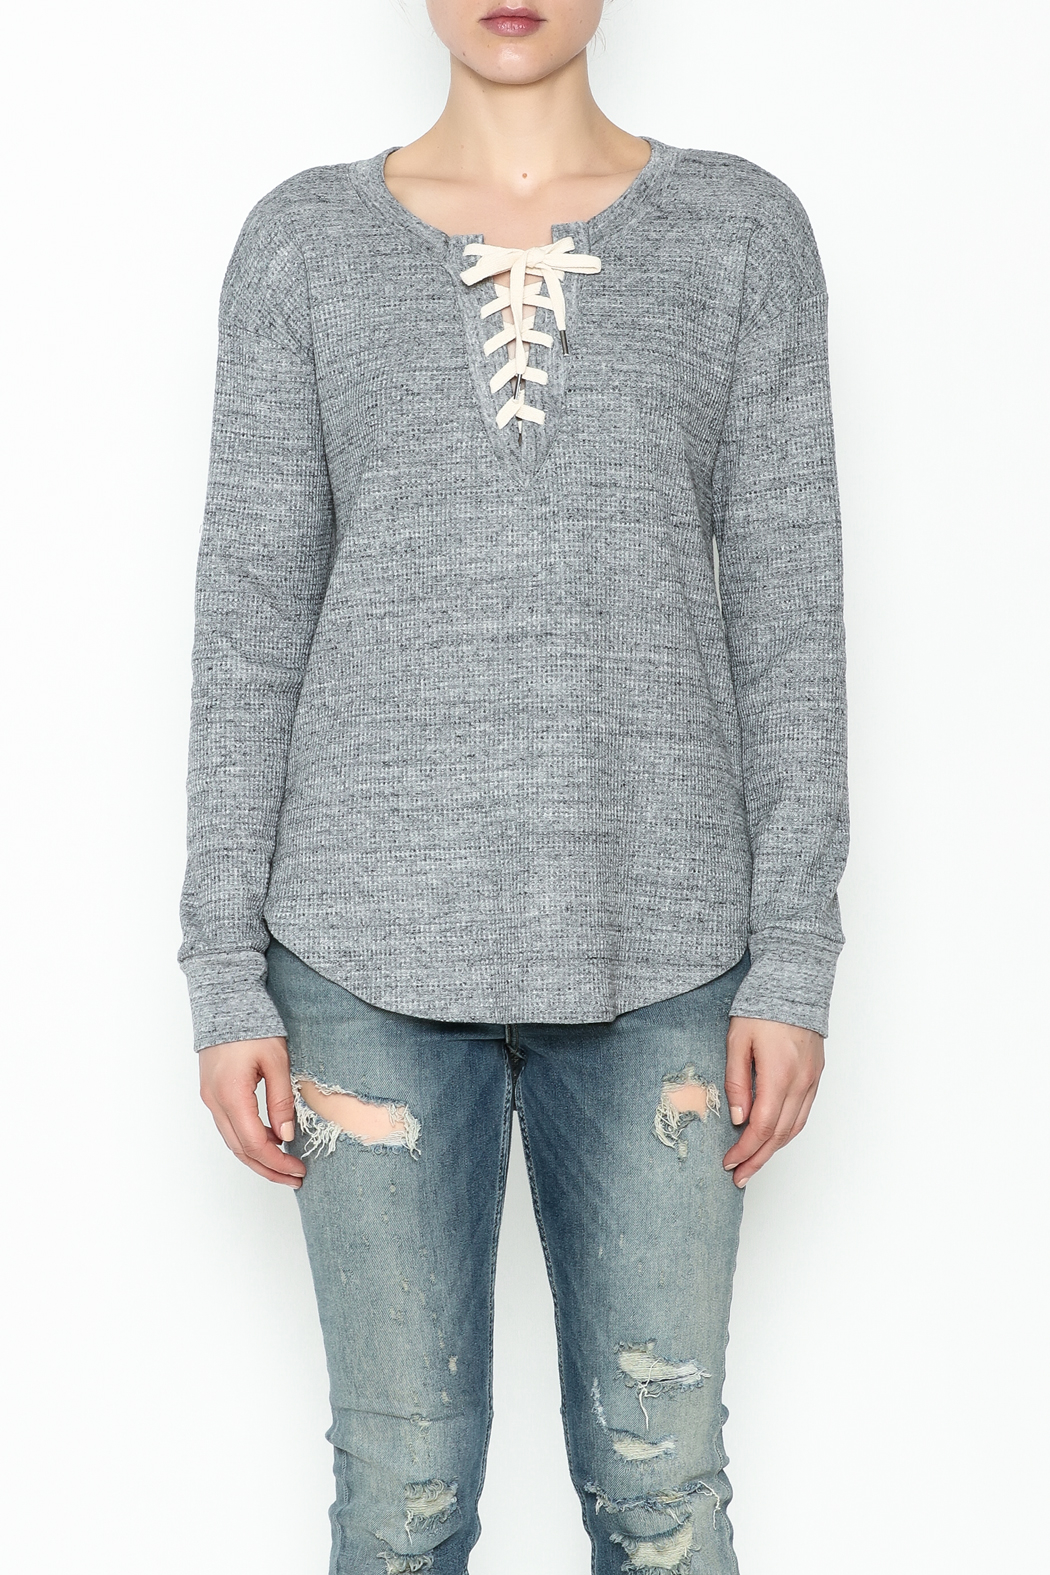 Splendid Thermal Lace Up Top - Front Full Image